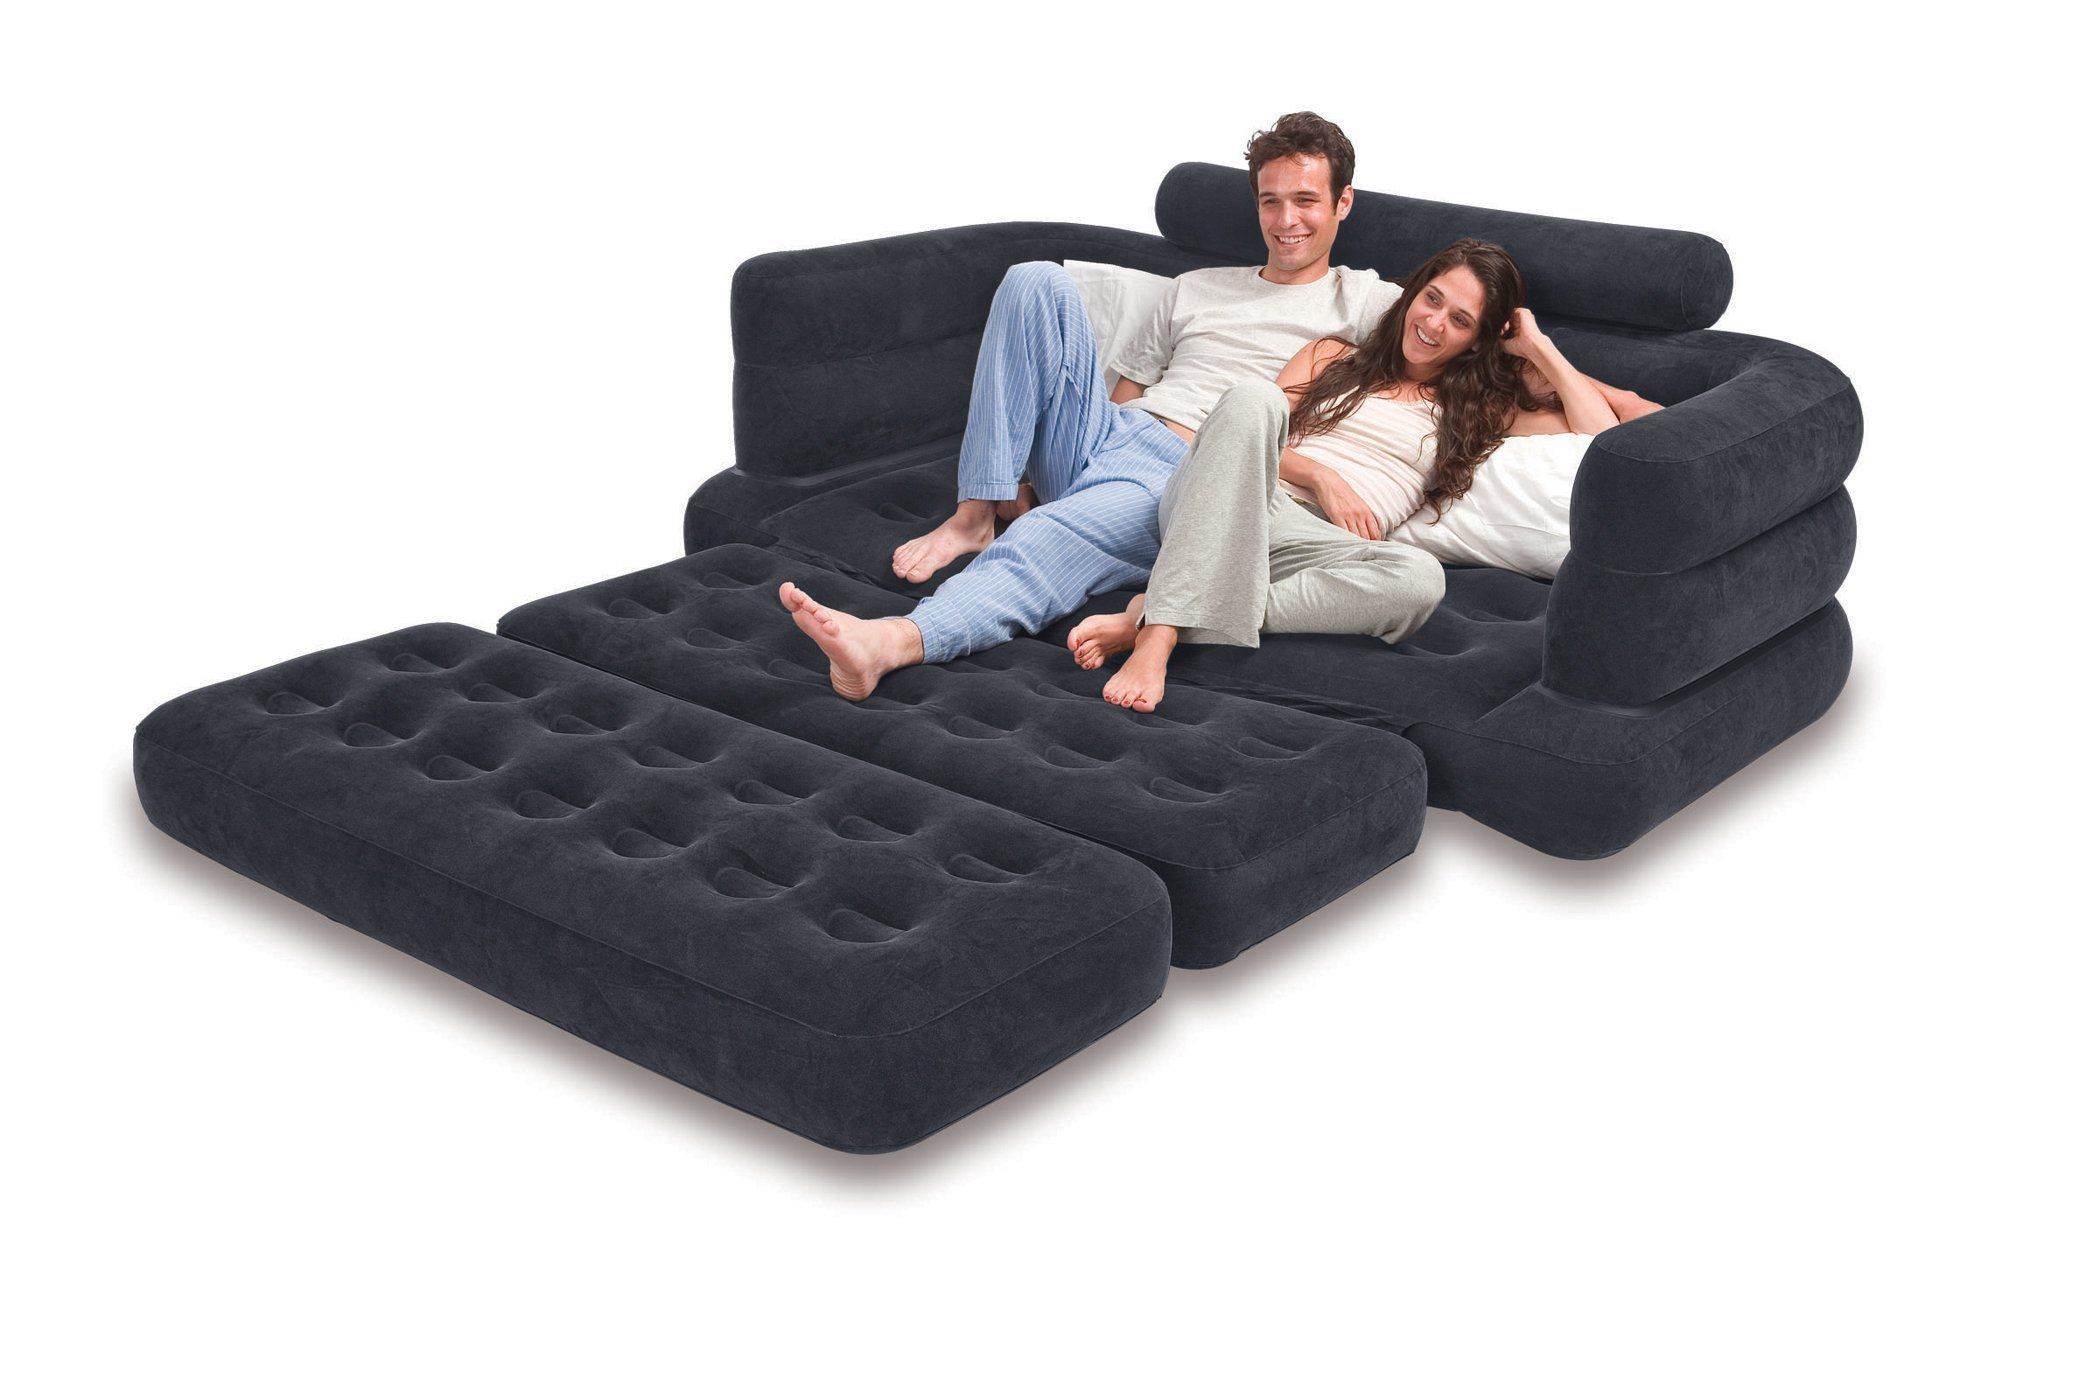 sofa bed chair amazon es palabra aguda grave o esdrujula intex pull out inflatable 76 quot x 91